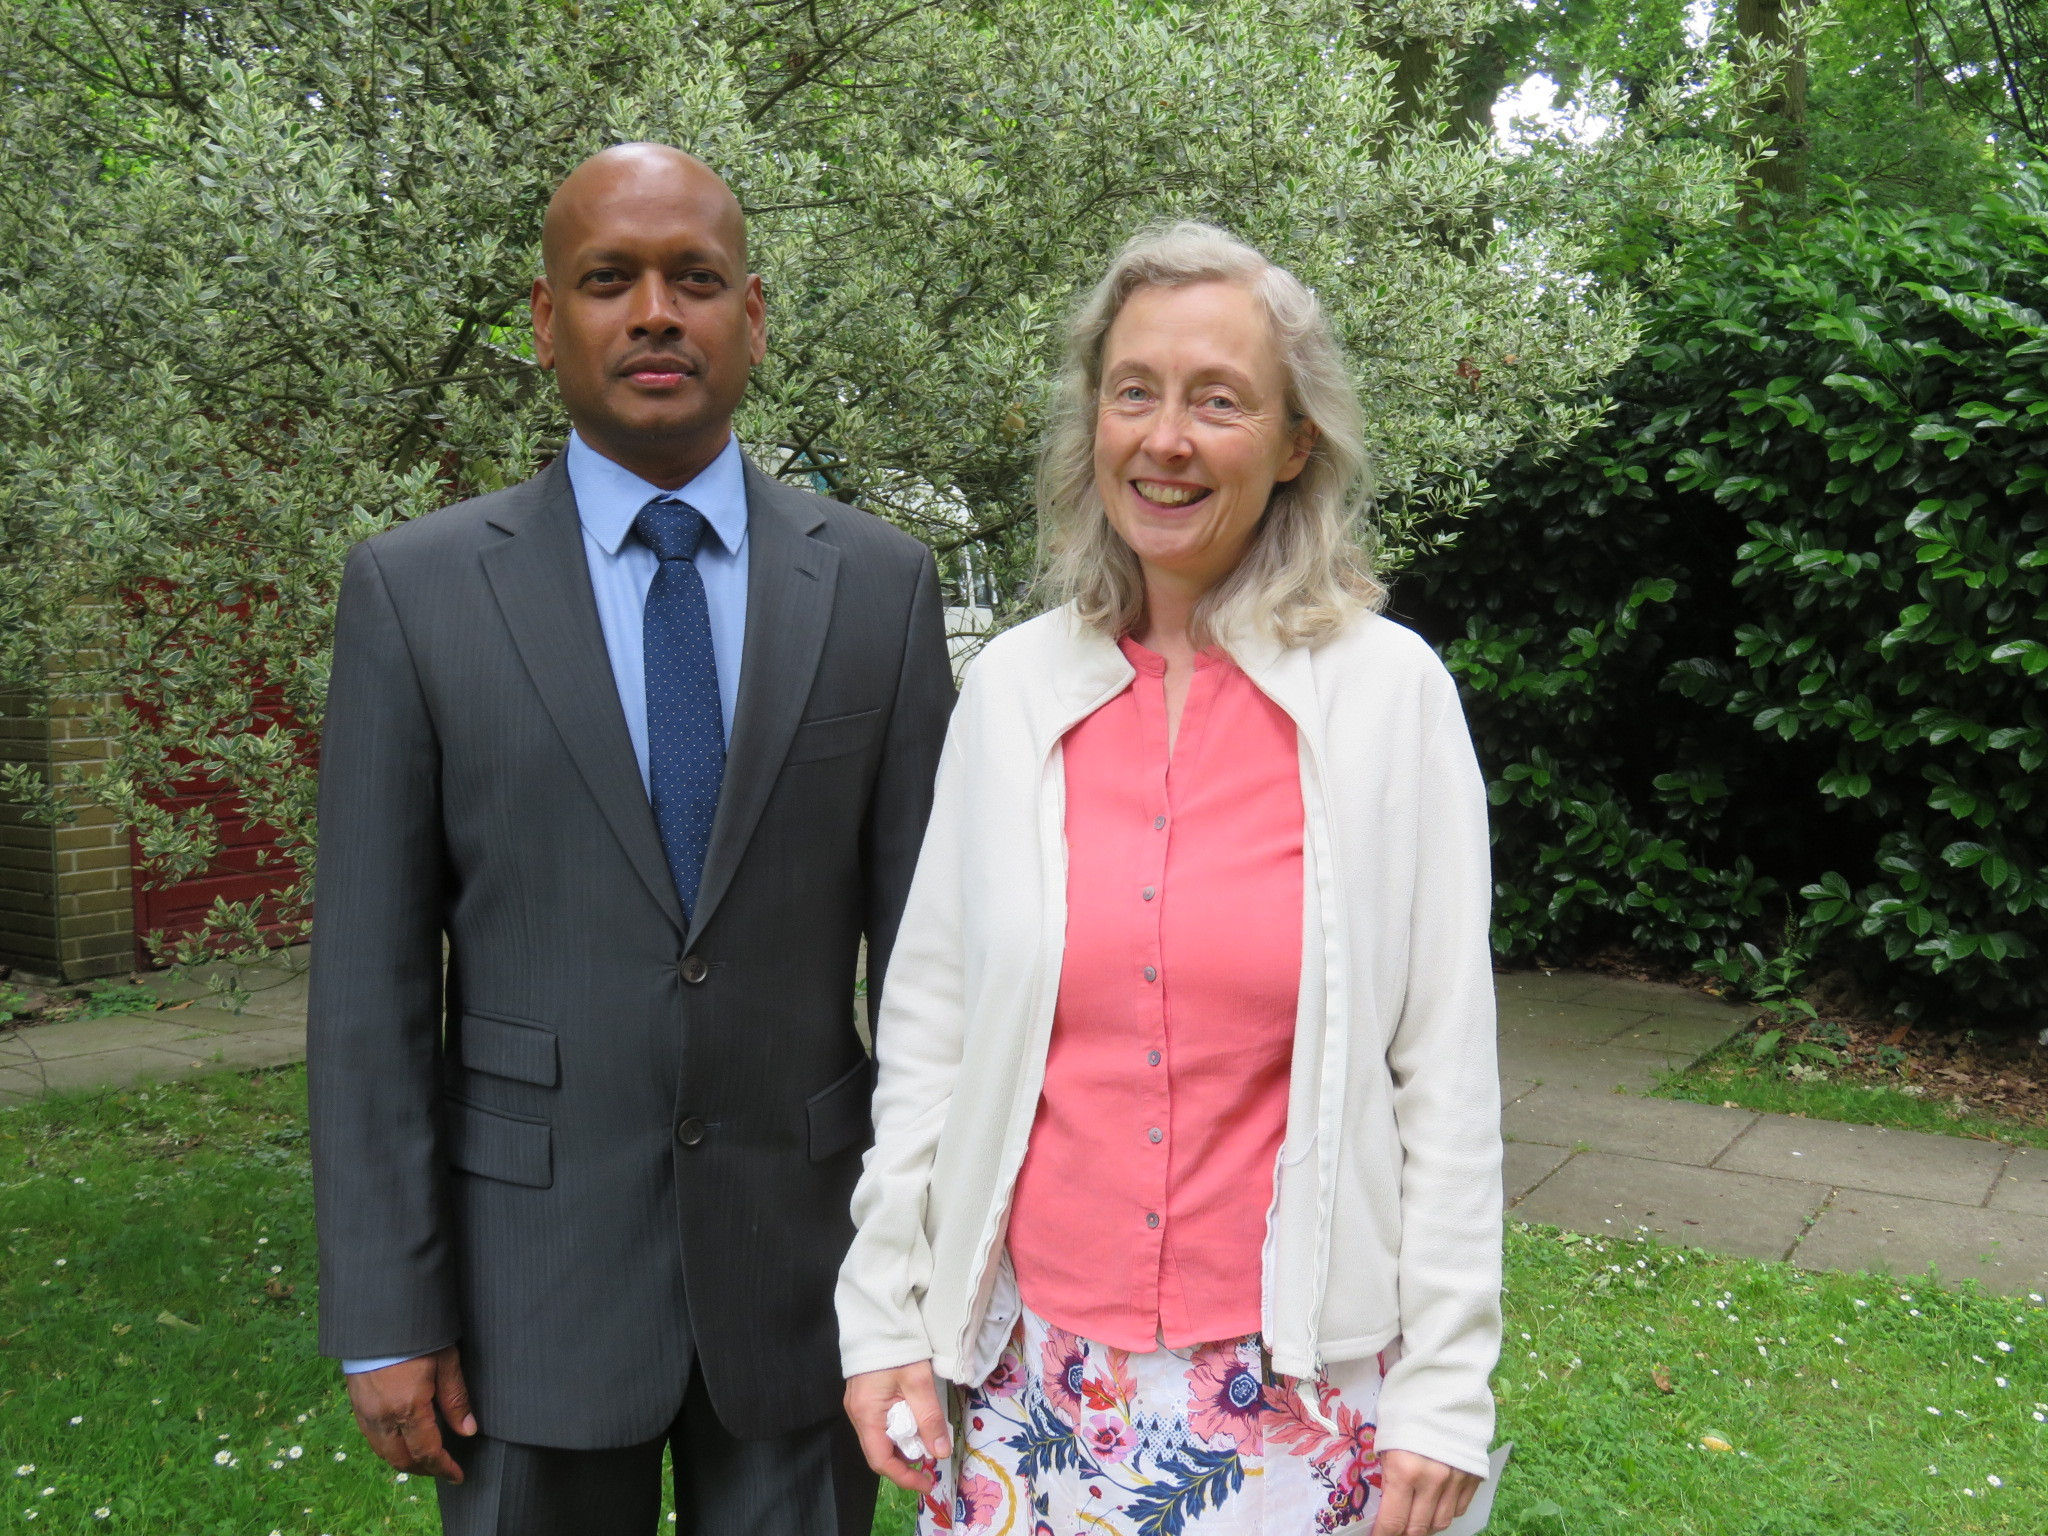 Amanda Powell with Enoch Kanageraj